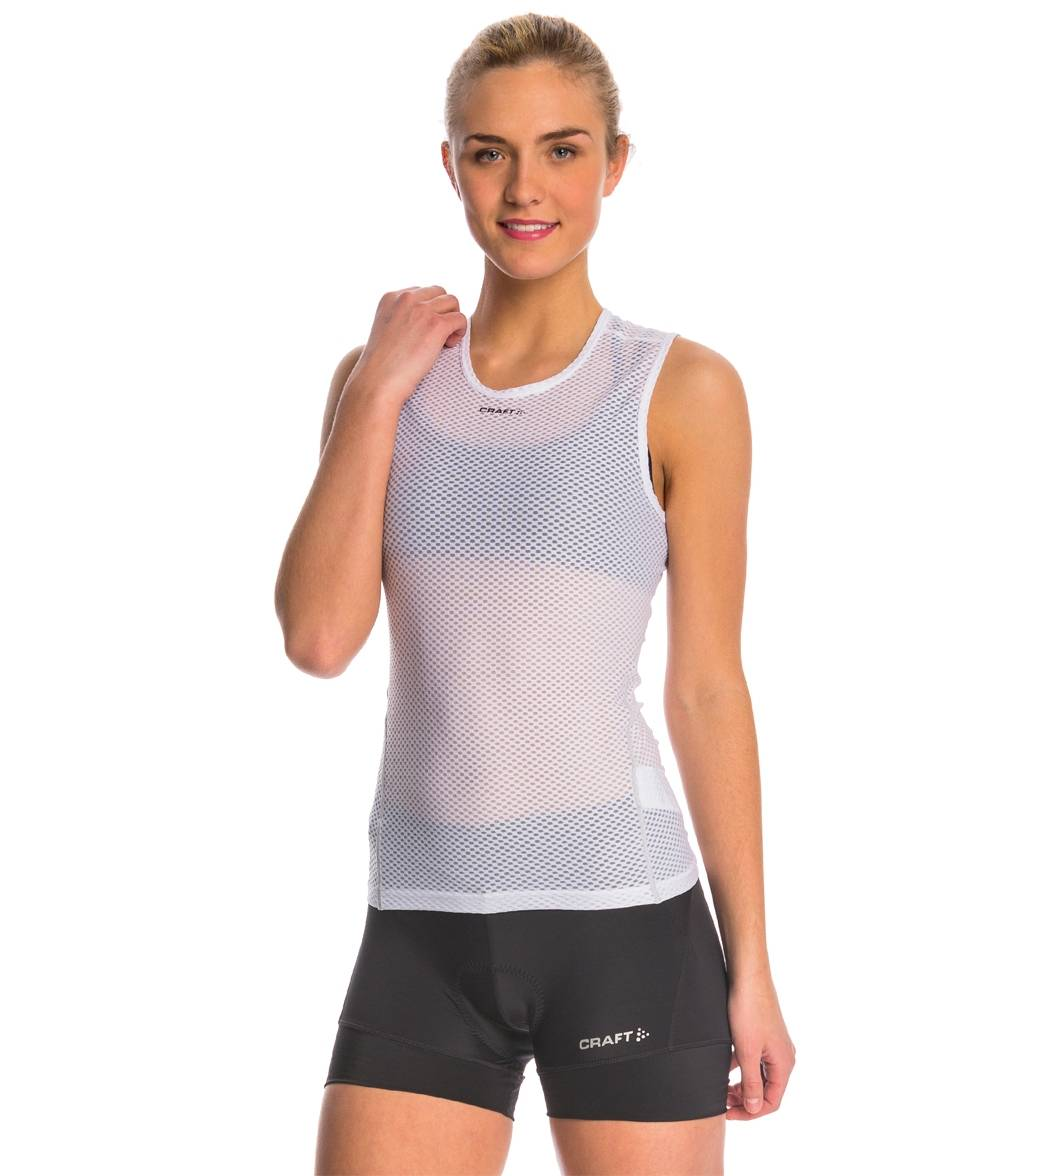 abf59b628aa72 Craft Women s Cool Mesh Superlight SL Base Layer at SwimOutlet.com ...